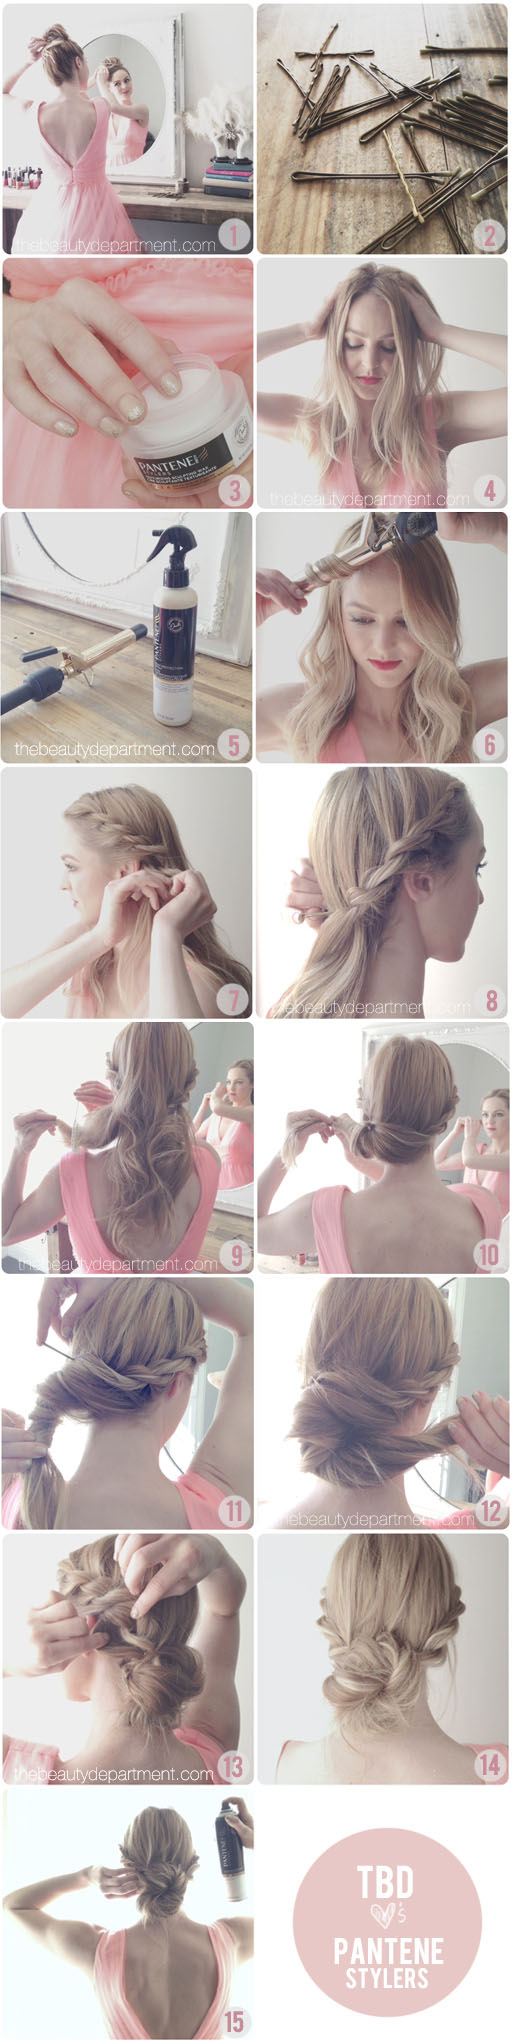 ROPE-BRAID-CHIGNON